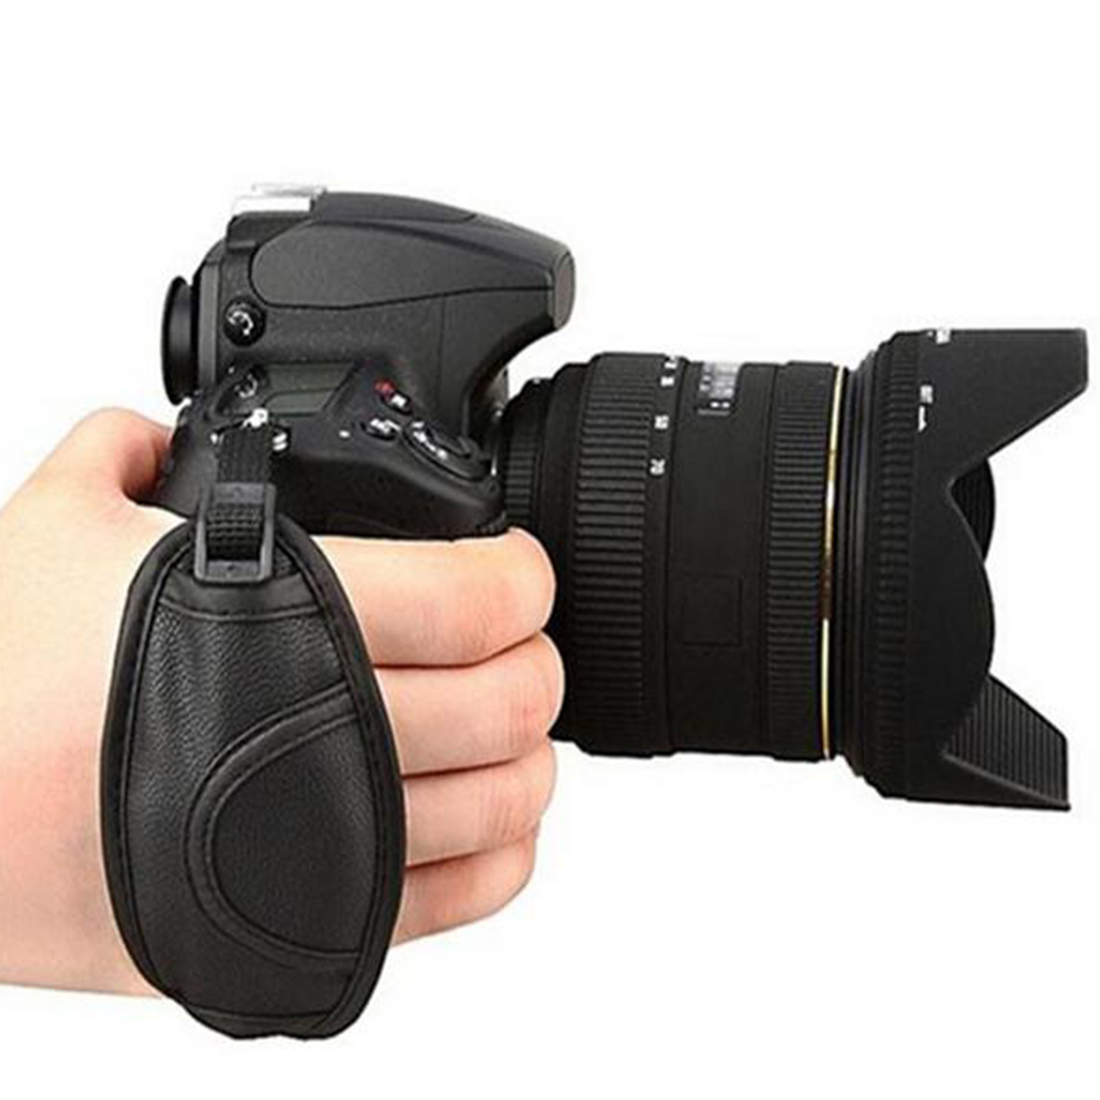 <font><b>Camera</b></font> Hand Strap Grip for Canon 5D Mark II 650D 550D 70D 60D 6D 7D <font><b>Nikon</b></font> D90 D600 <font><b>D7100</b></font> D5200 D3200 D3100 D5100 D7000 for Sony image